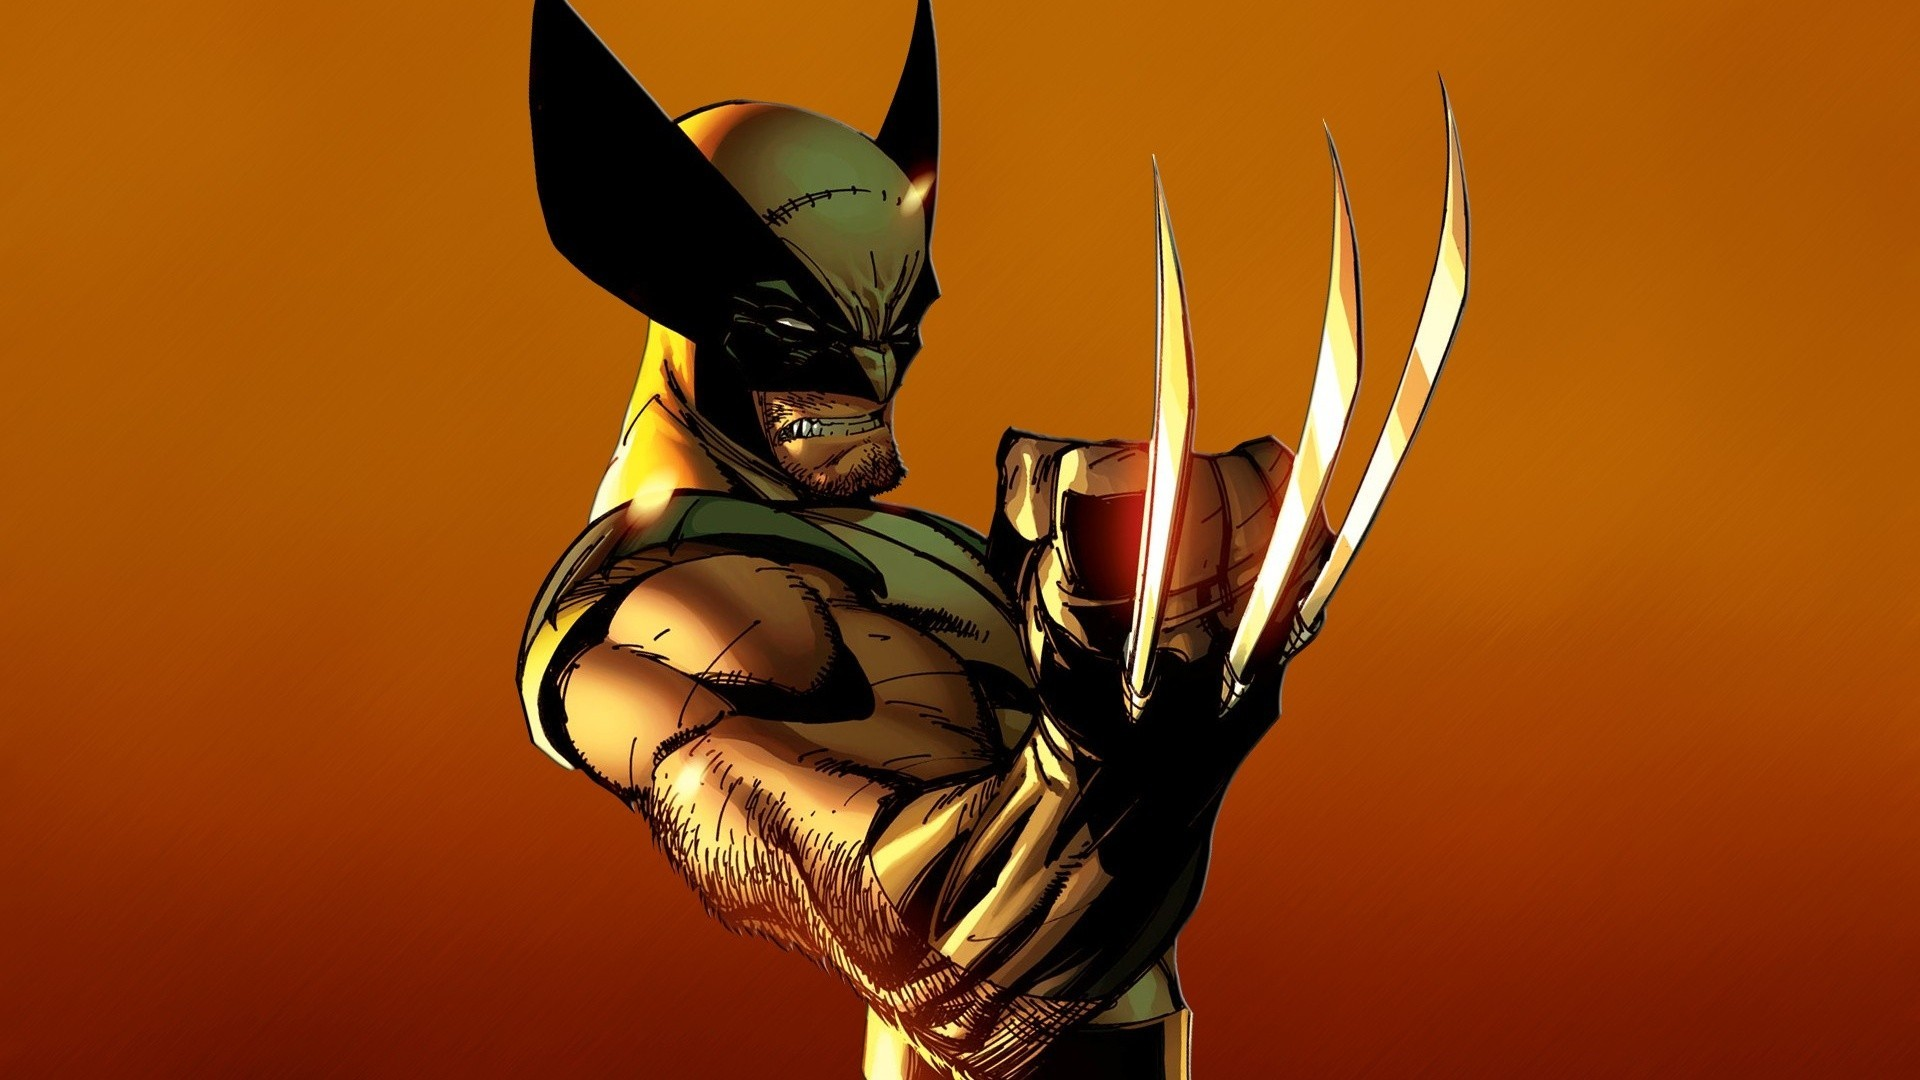 1920x1080 Wolverine Marvel superhero wallpaper